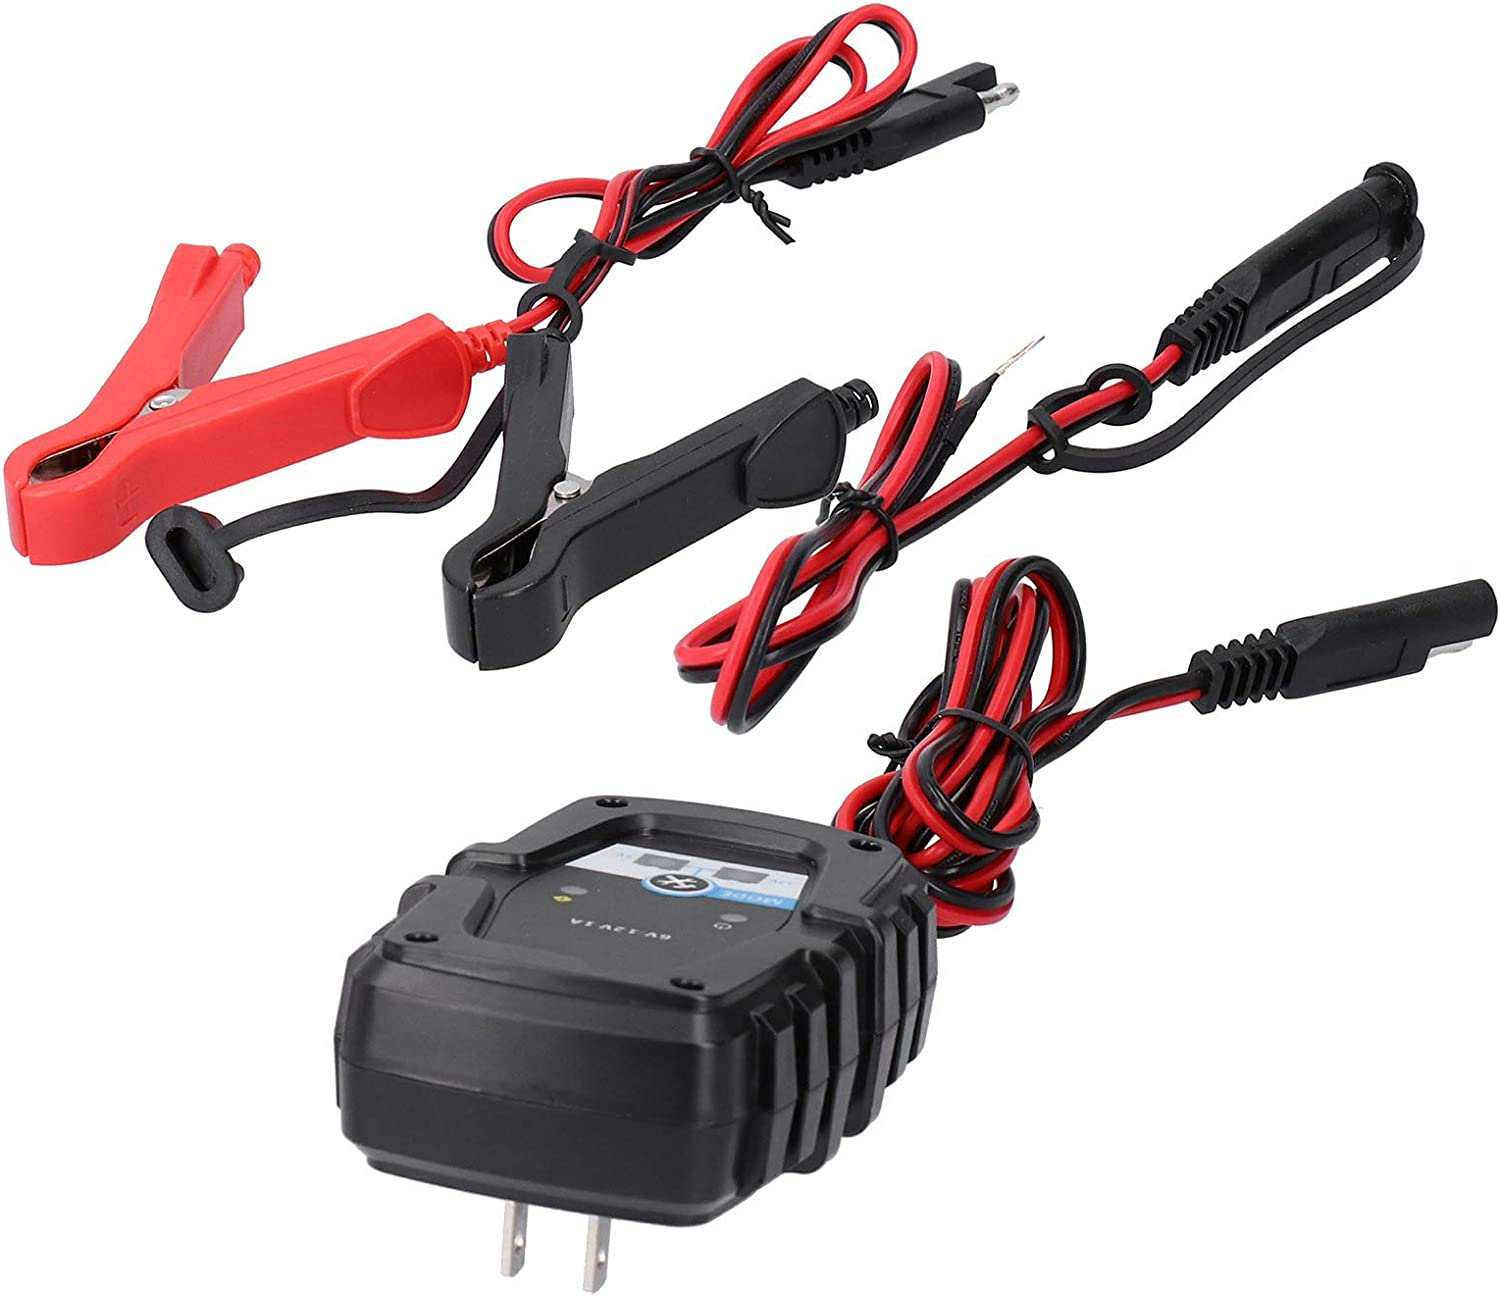 Akozon Battery Charger Max 89% OFF Maintainer 6V Automati 12V 1A Selling and selling Intelligent